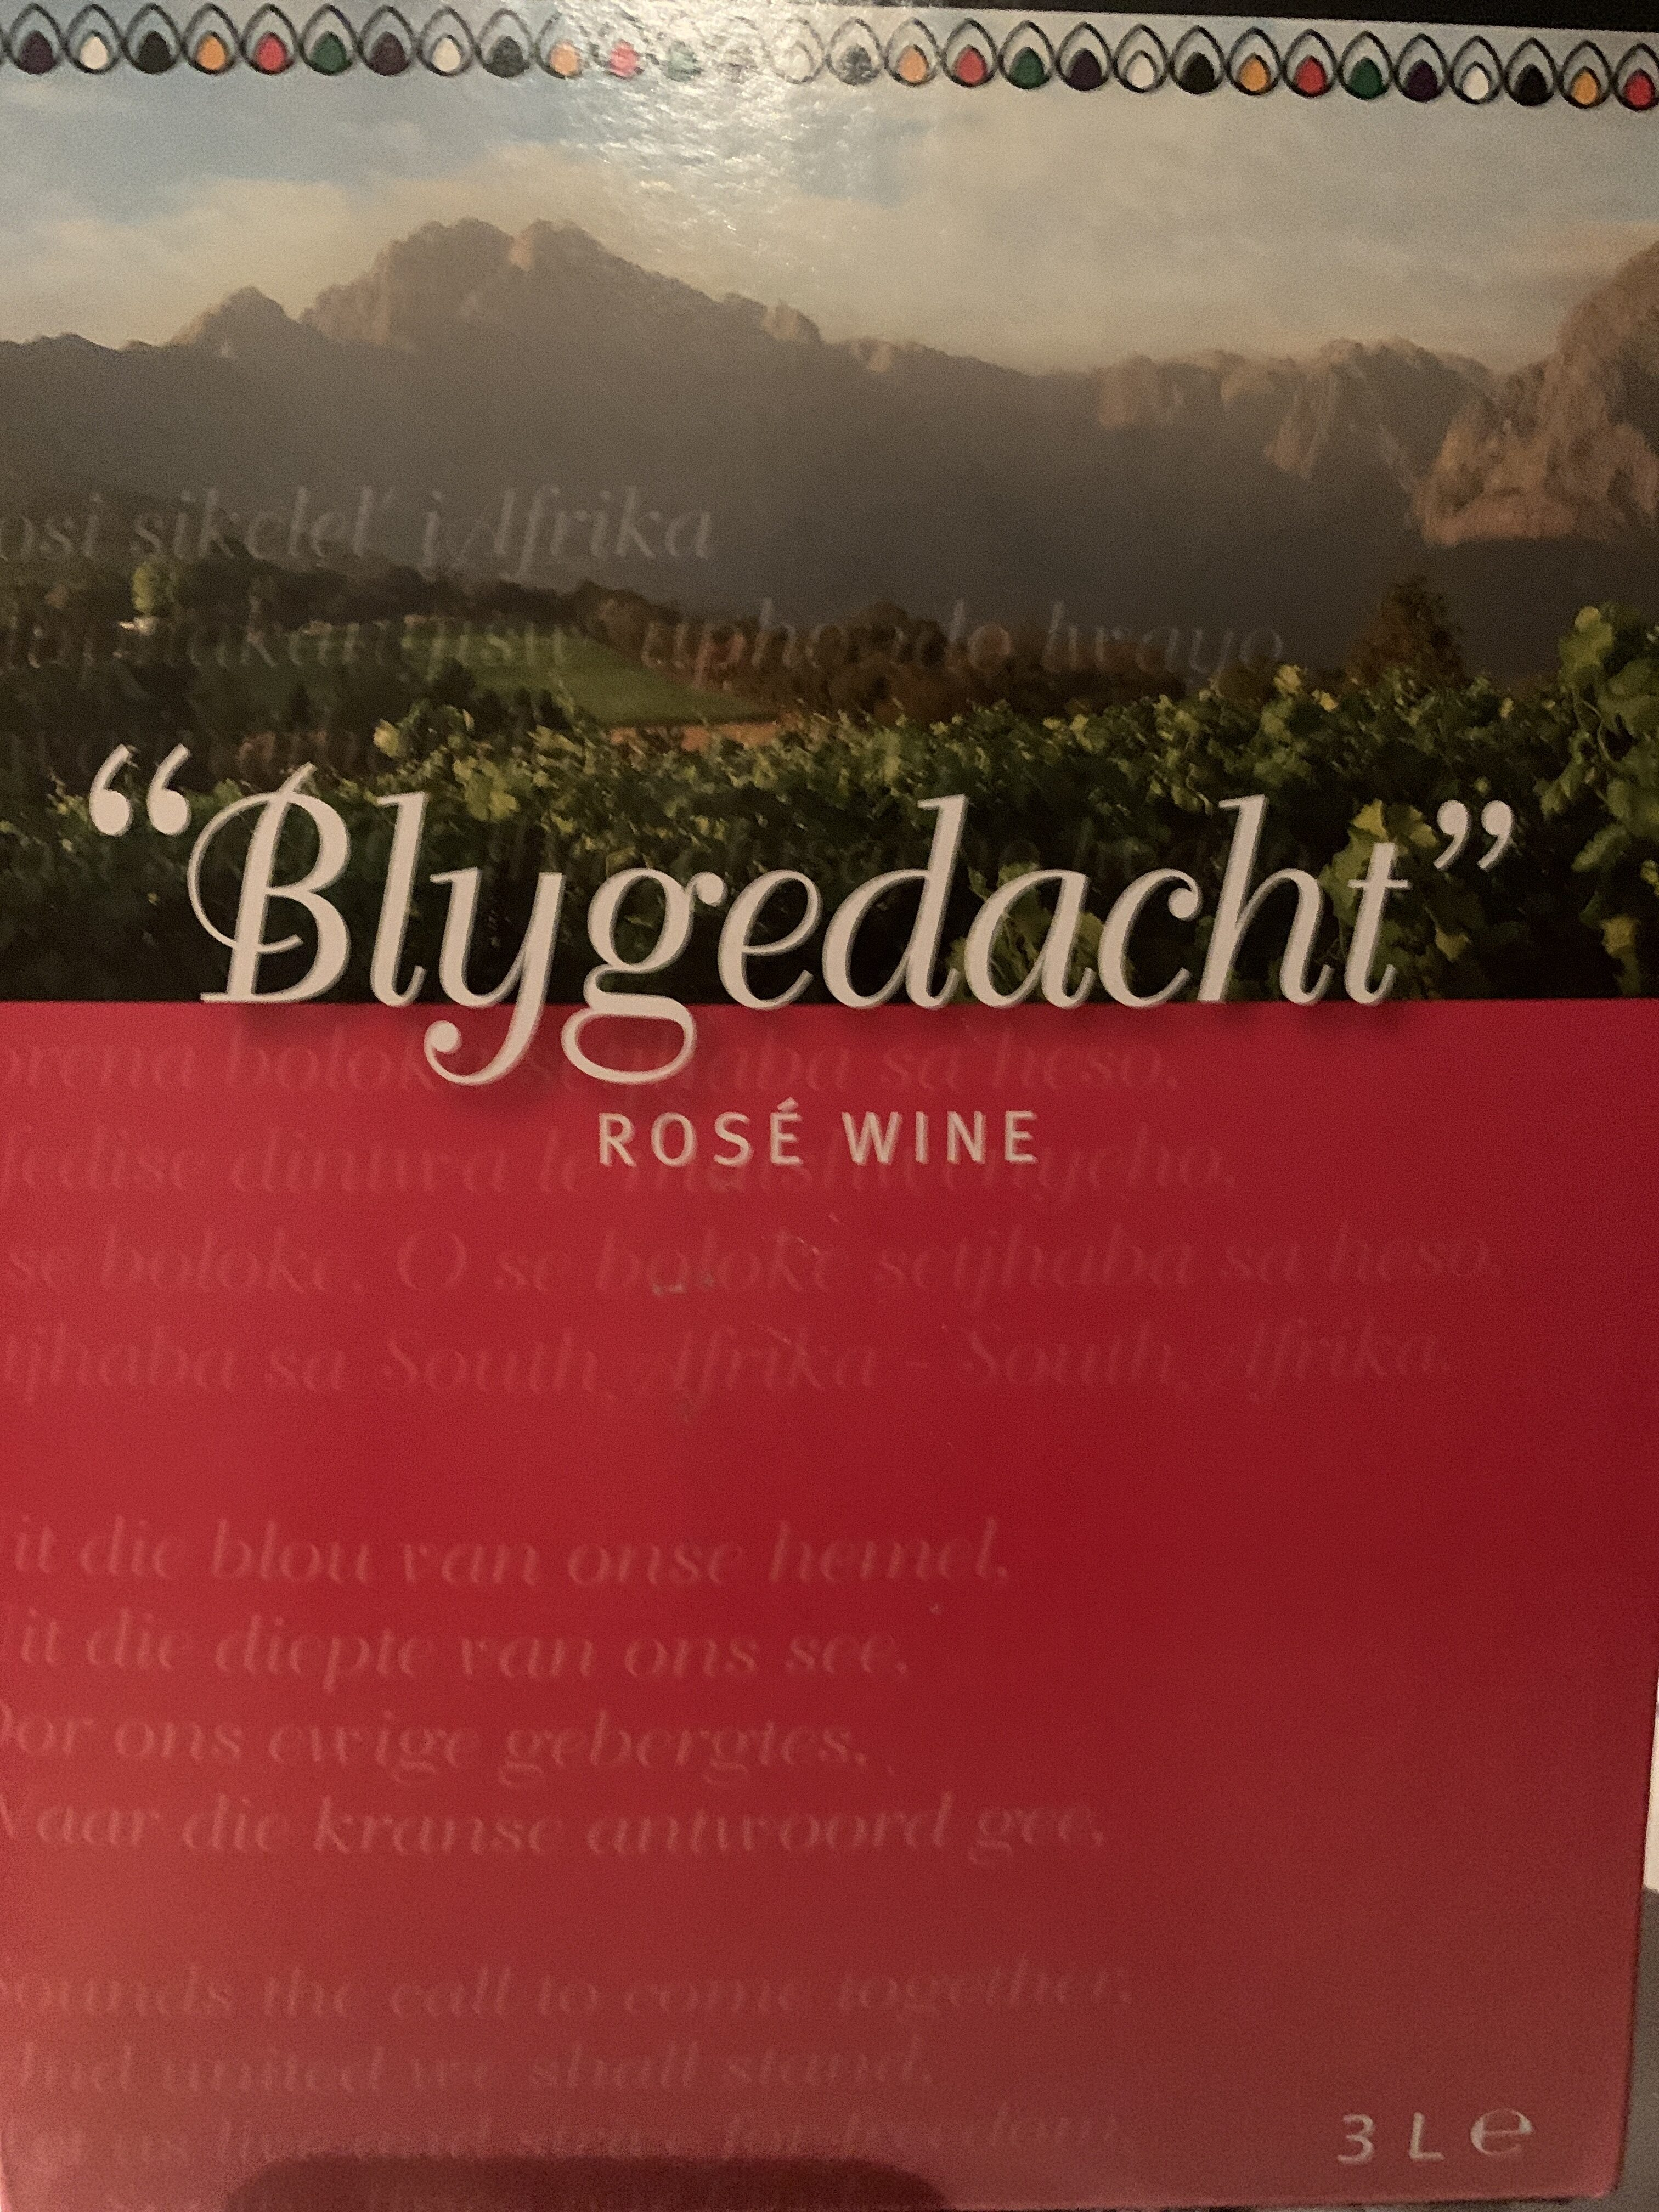 Blygedacht - Product - nl